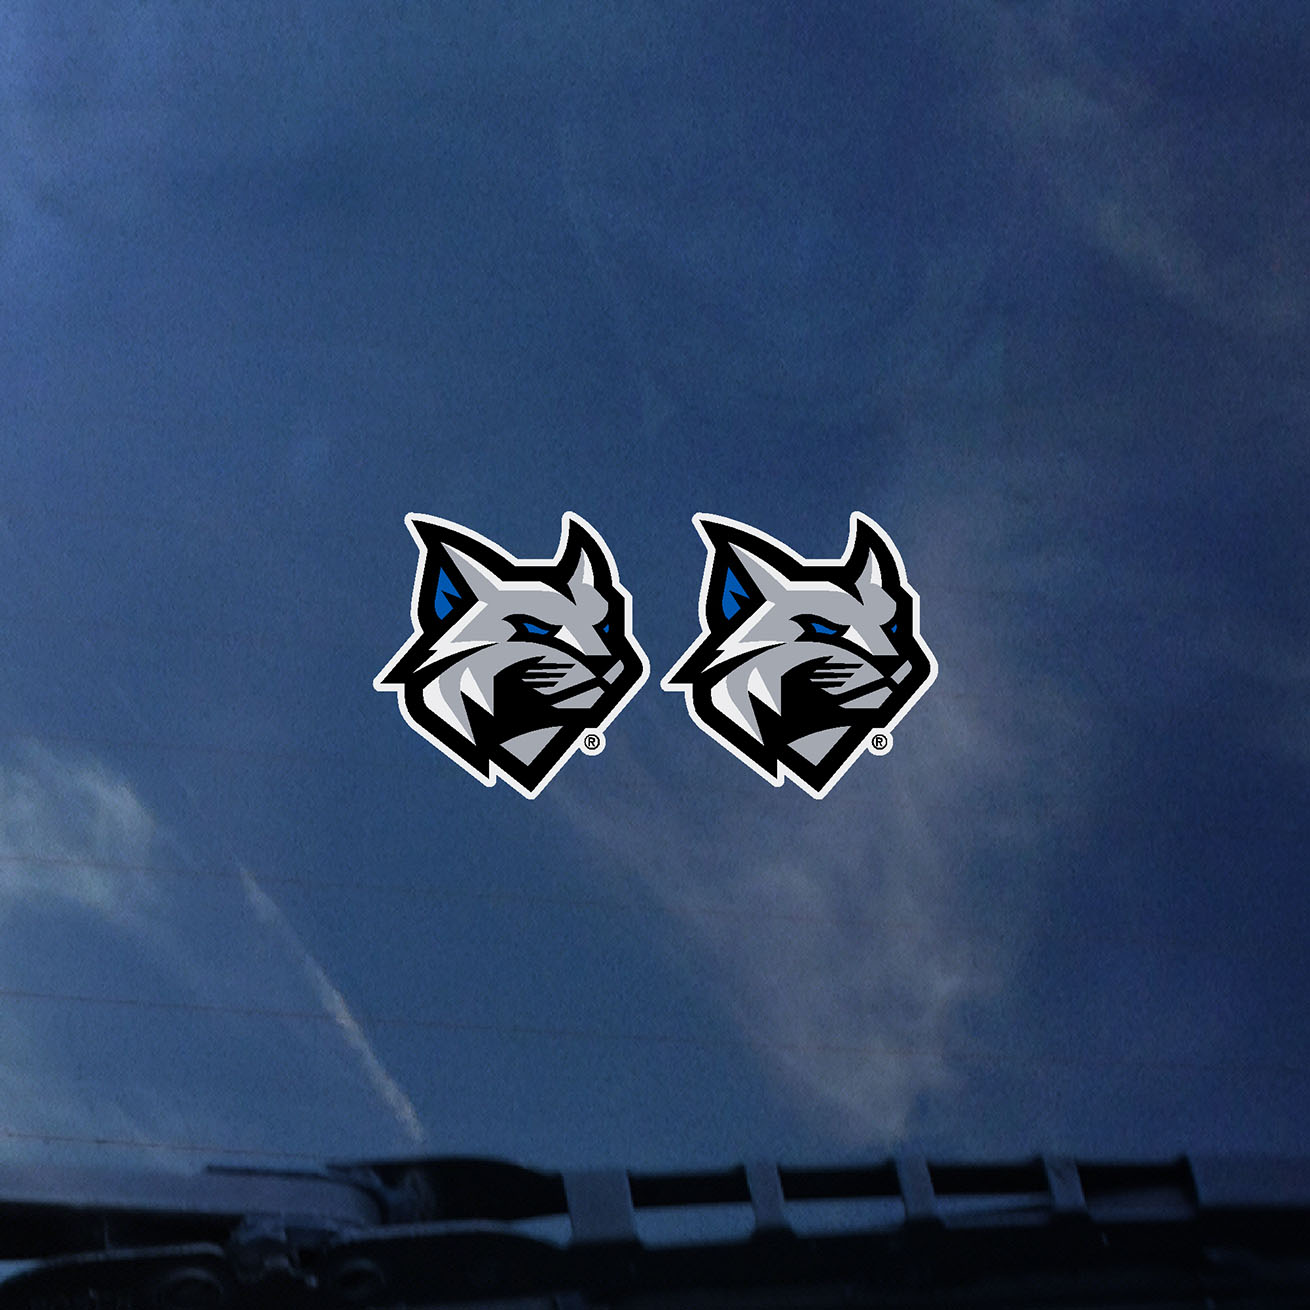 Cover Image For Small Wildcat Head Decals 2 Pack